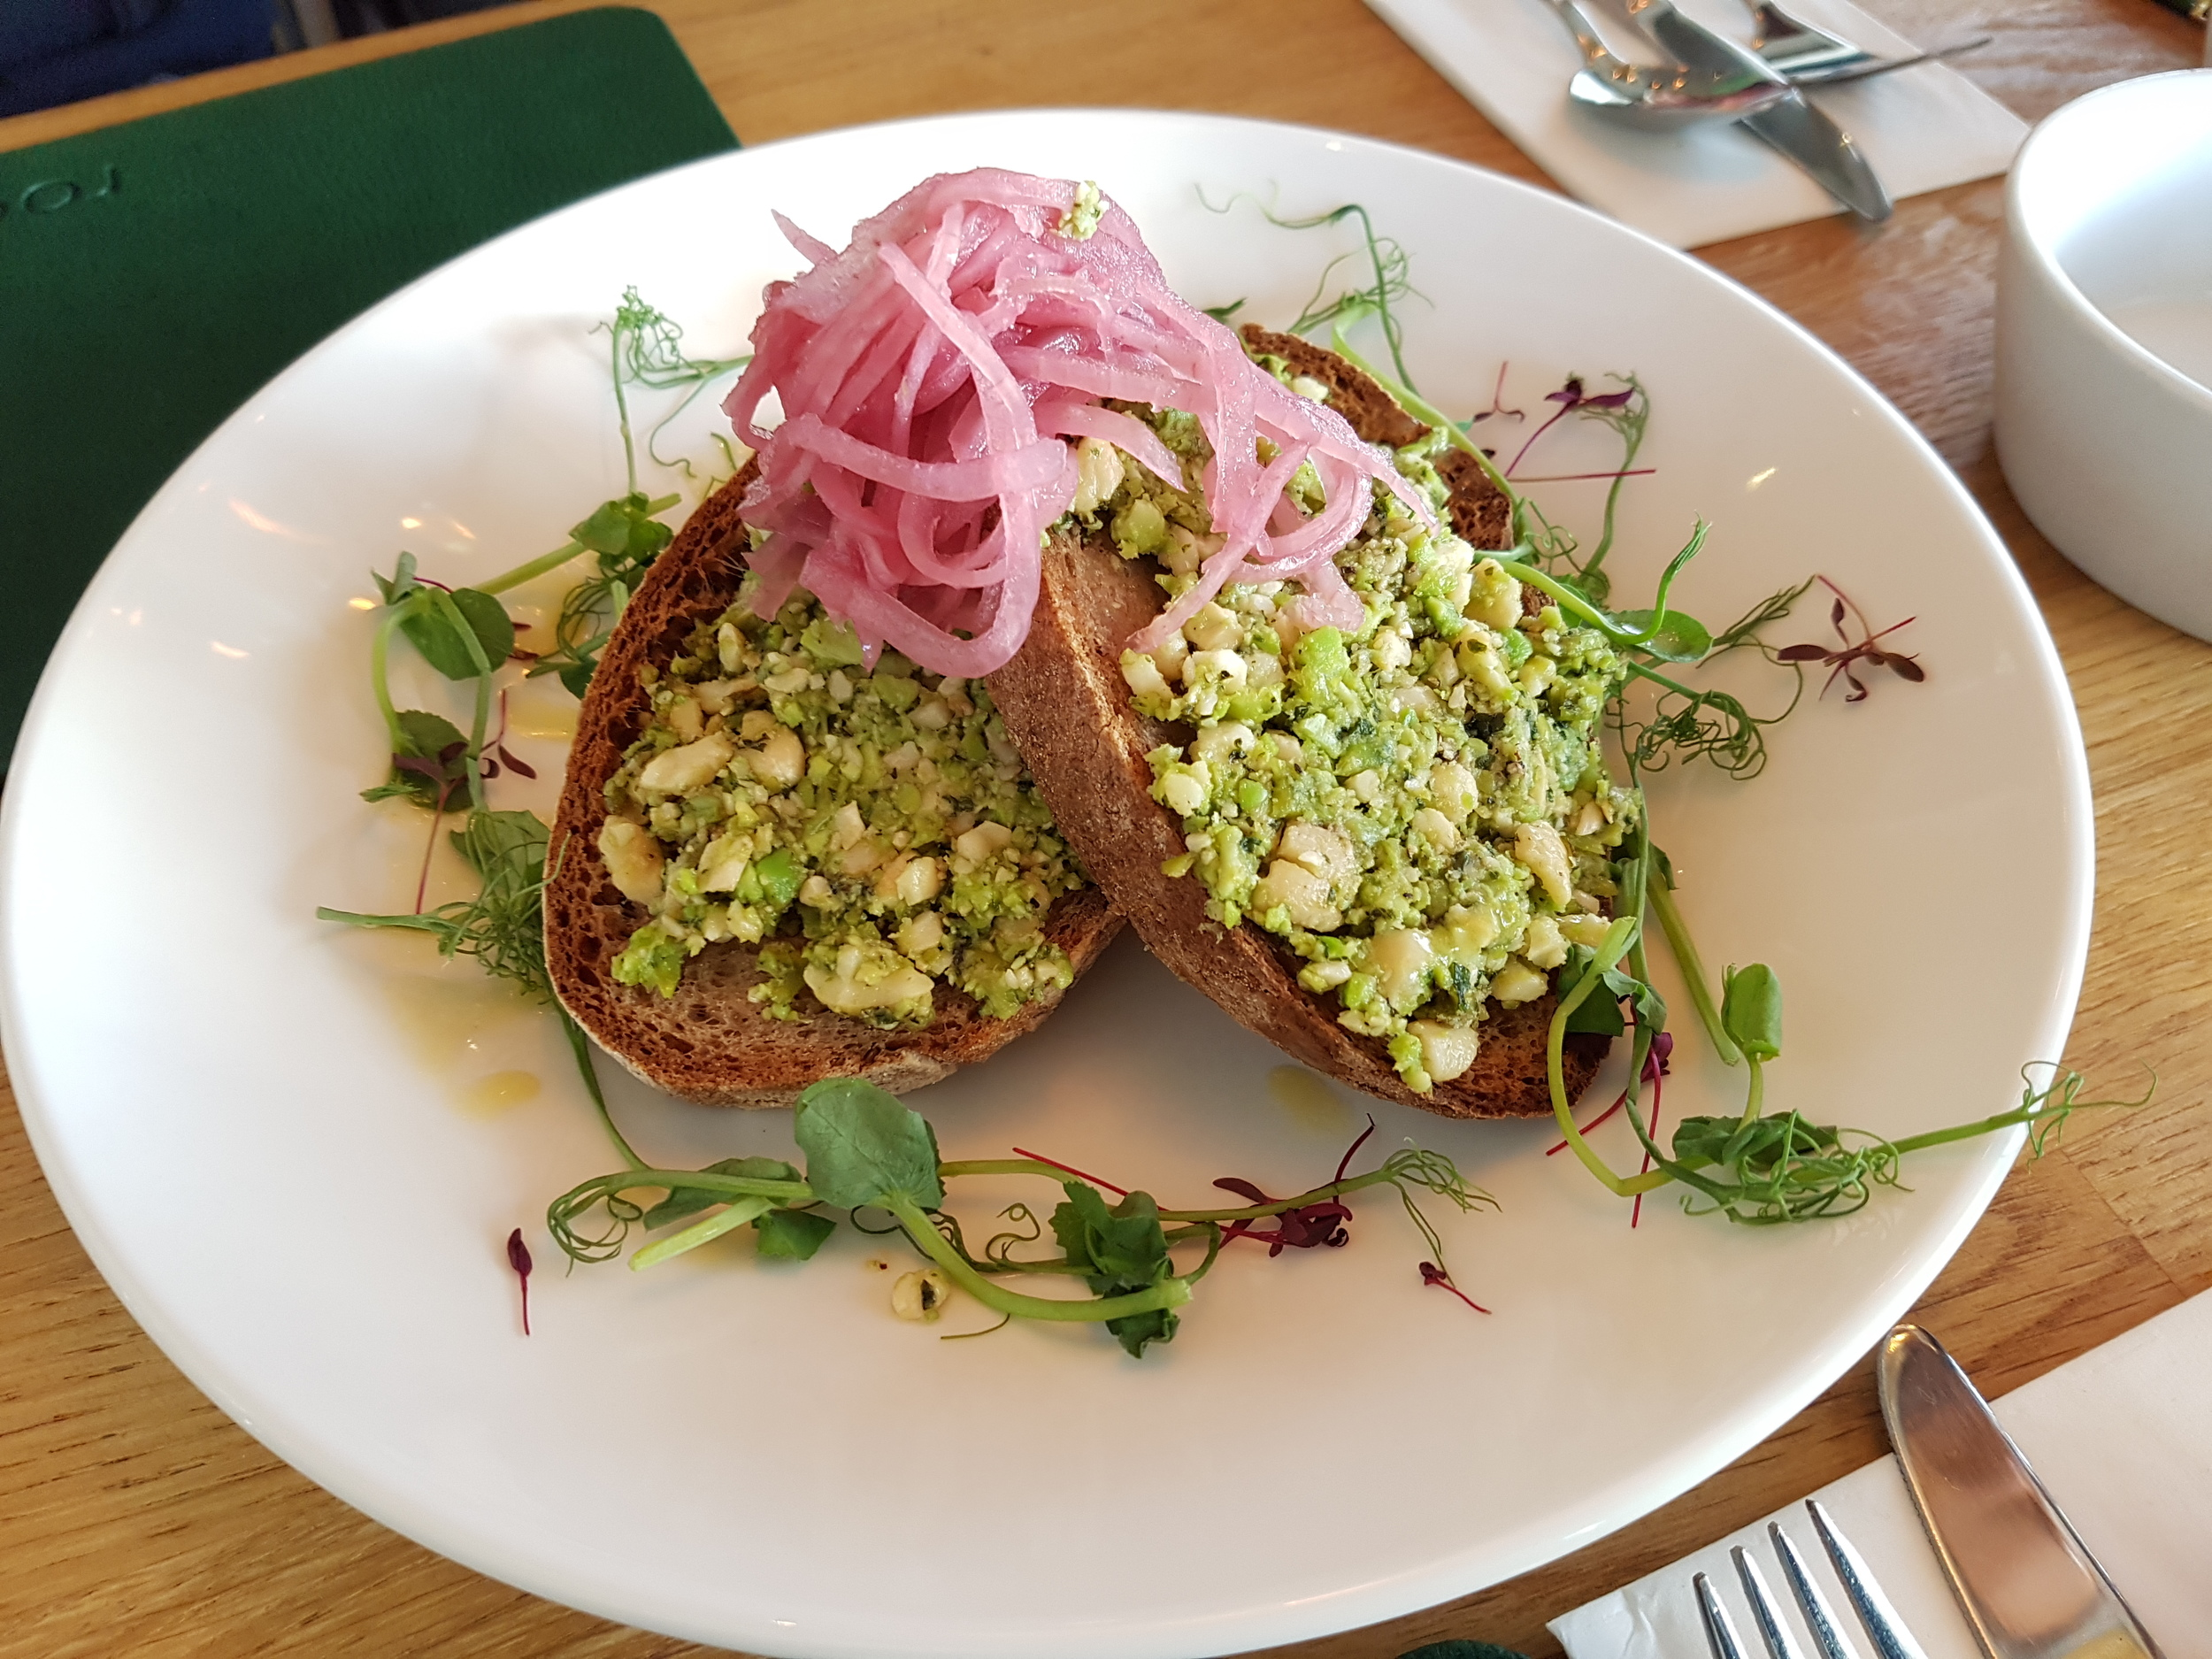 Fresh mint, broad bean & cashew pate on toasted sourdough, garnished with pickled red onion